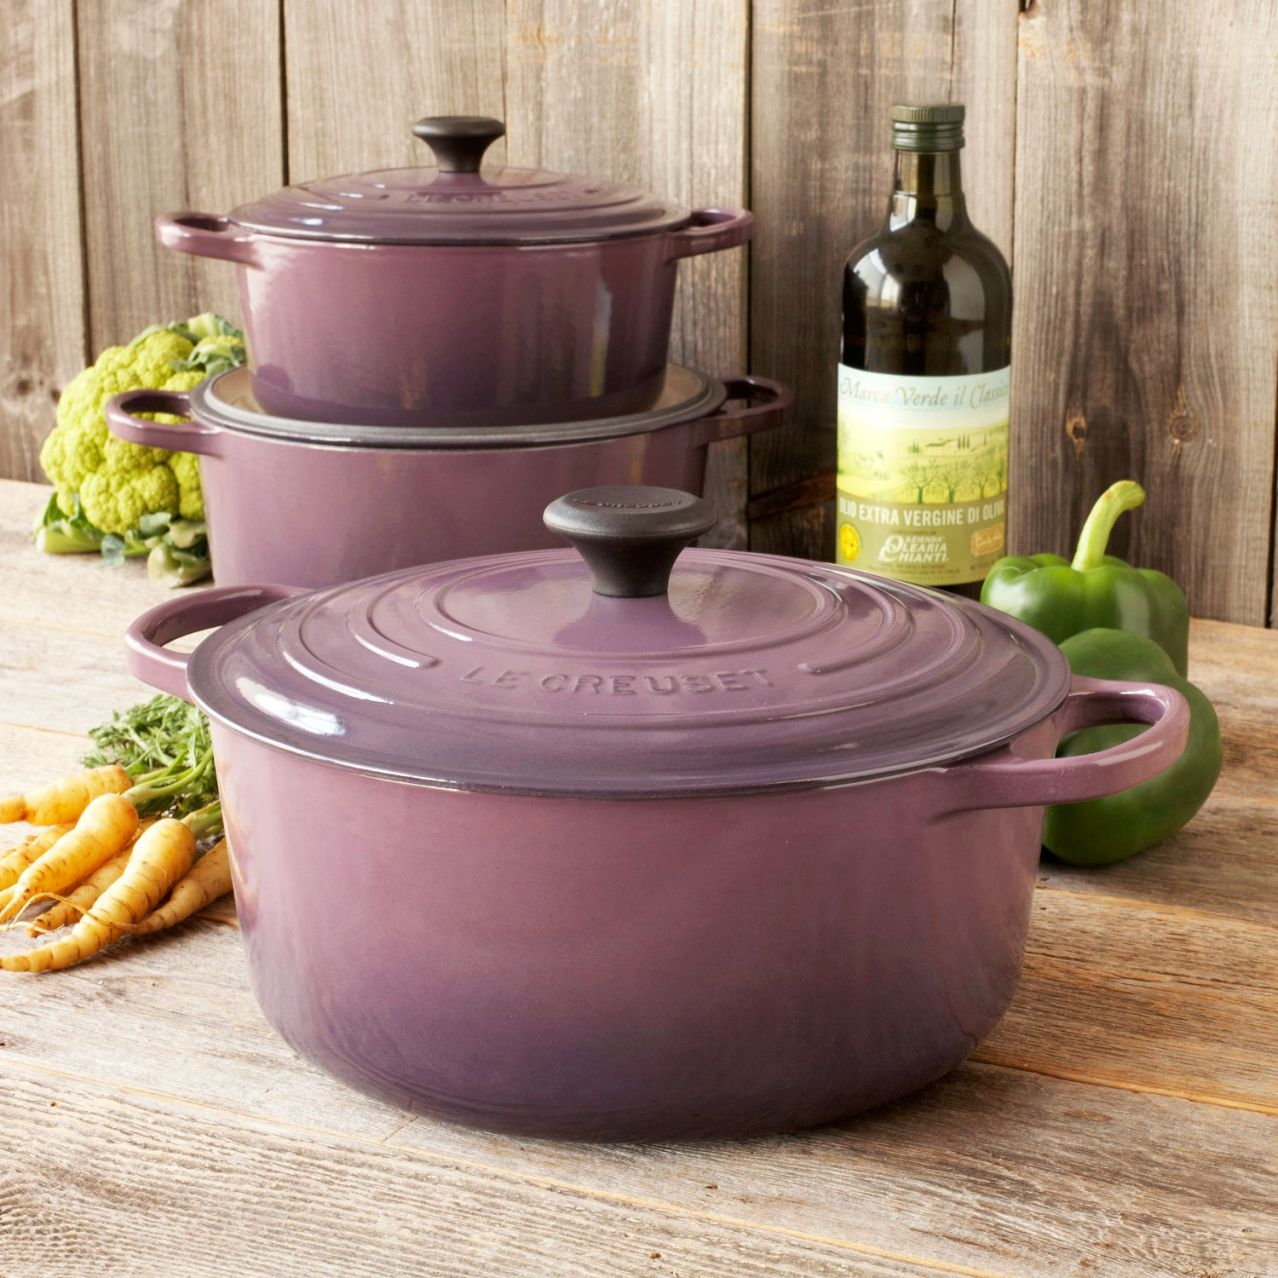 Le Creuset® Signature Cassis Round French Ovens | Sur La Table Purple!